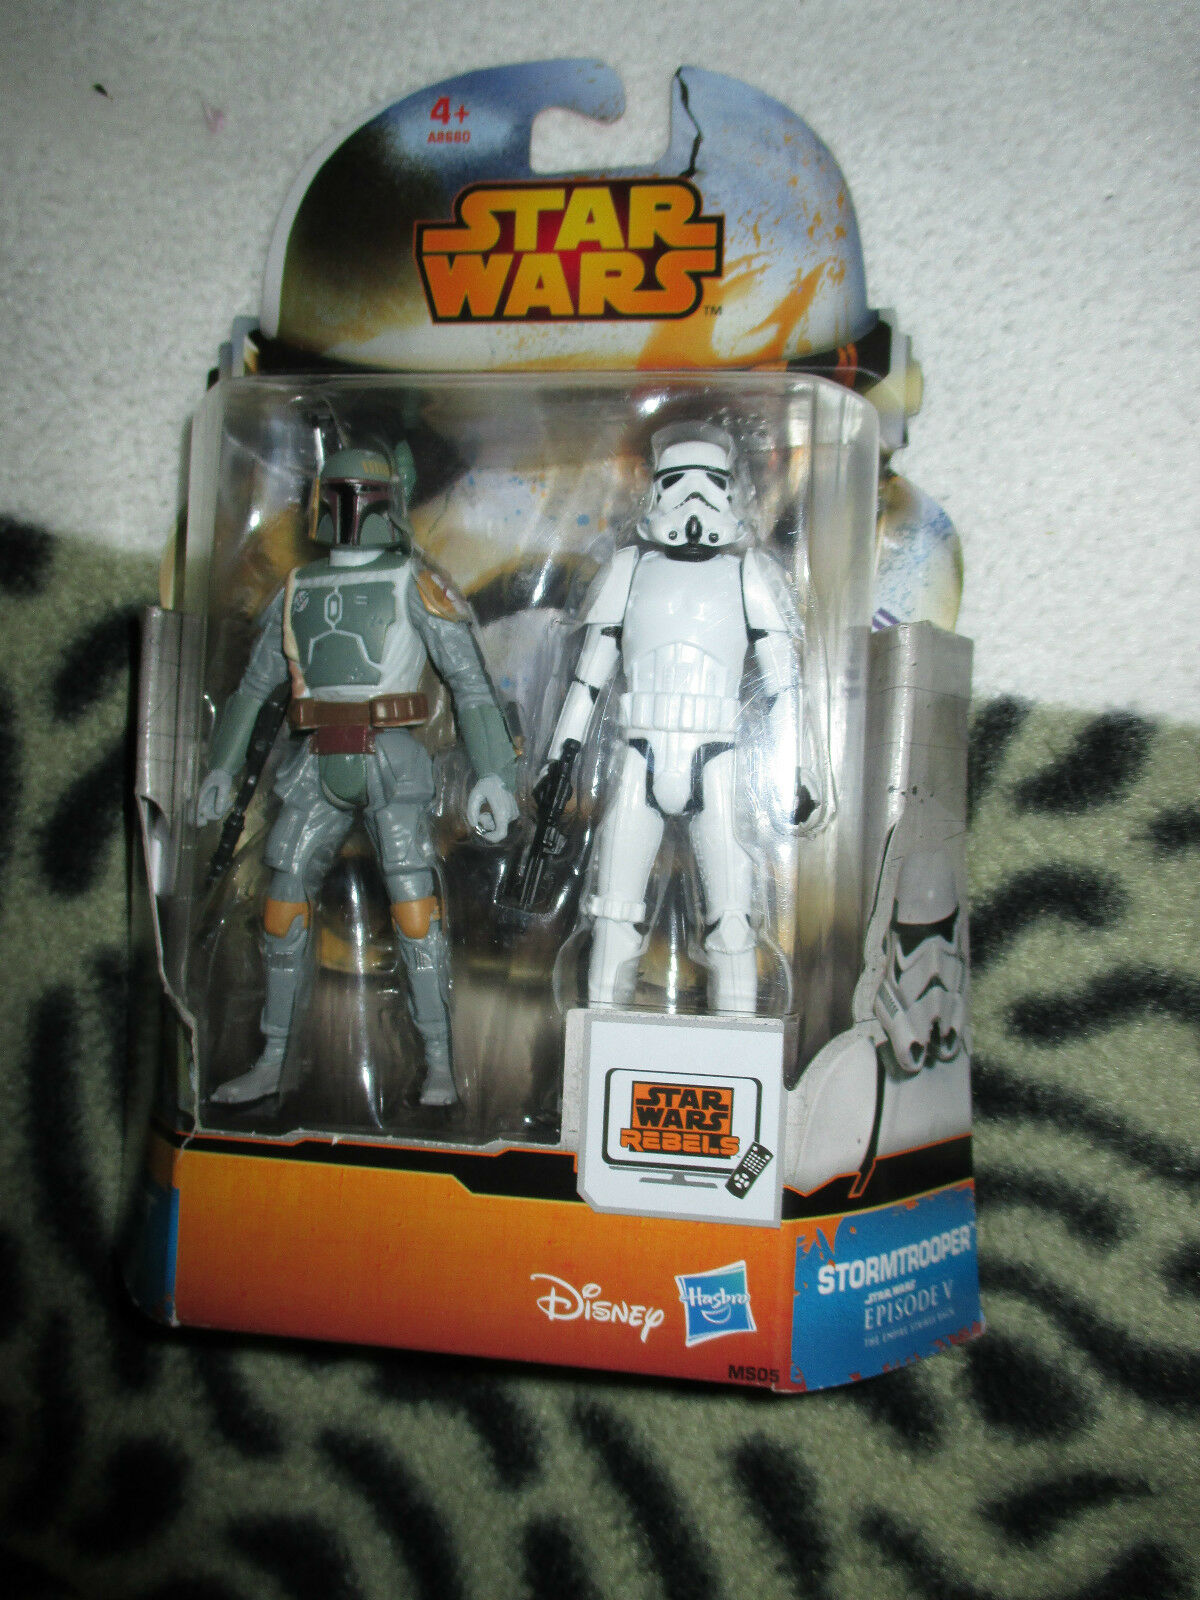 Star wars  Episode V Boba fett and stormtrooper   figure set